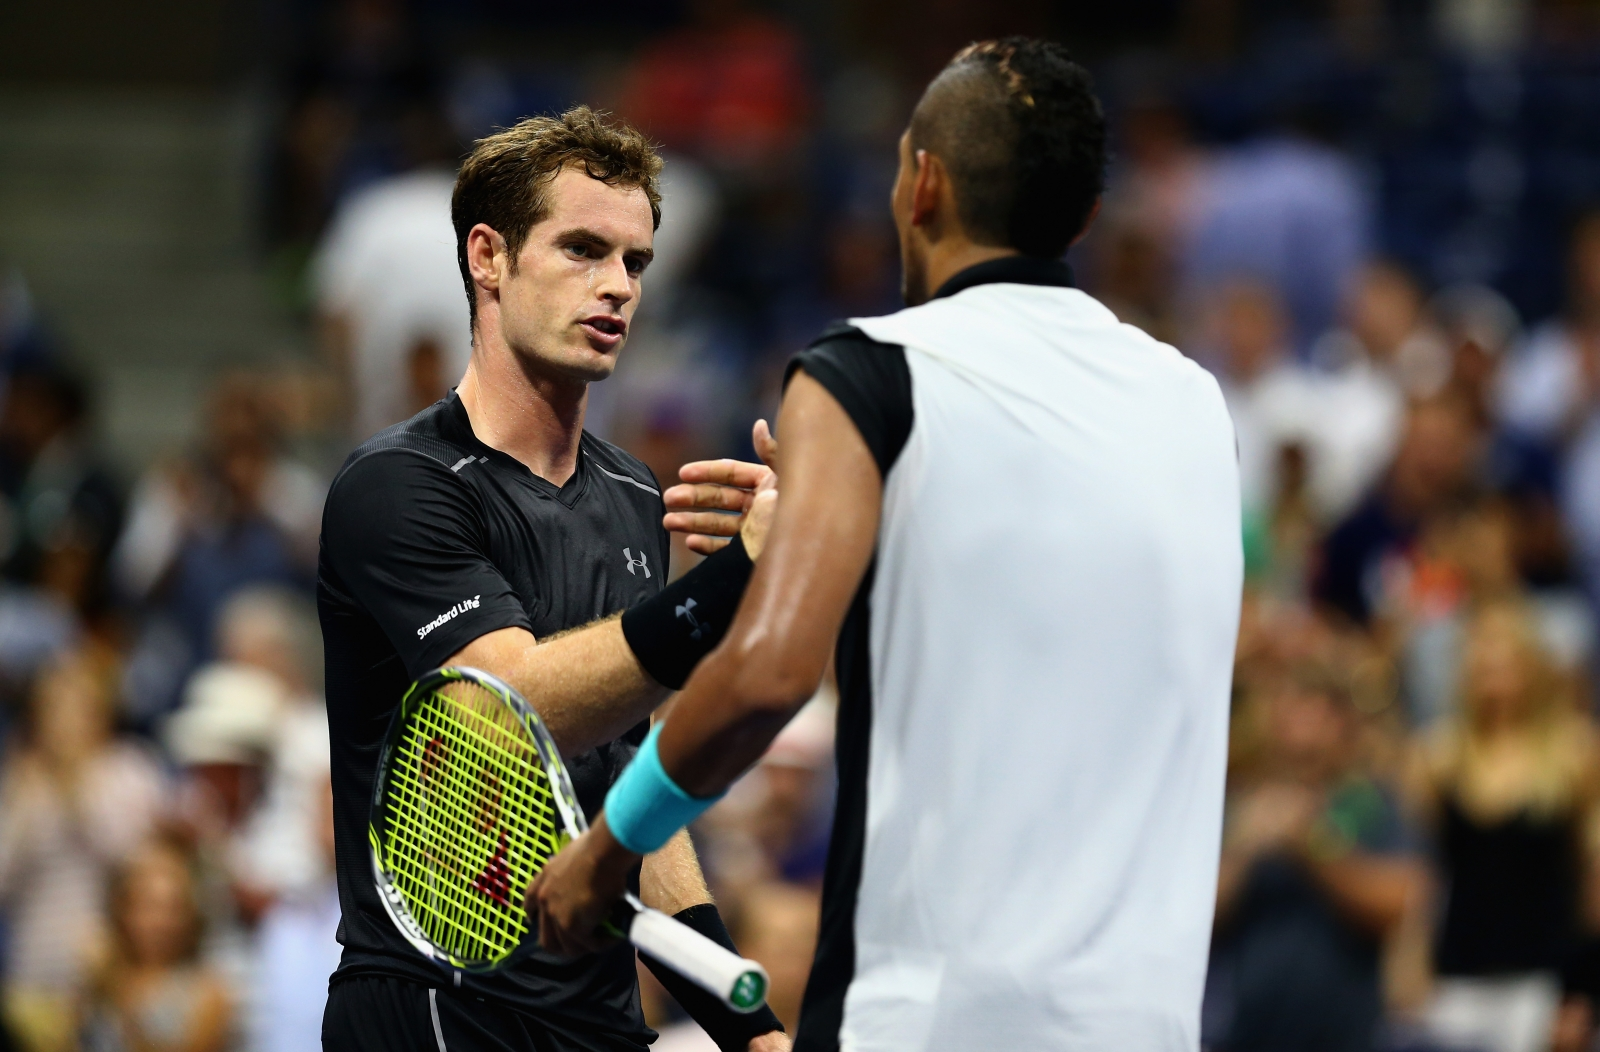 Andy Murray Nick Kyrgios US Open 2015